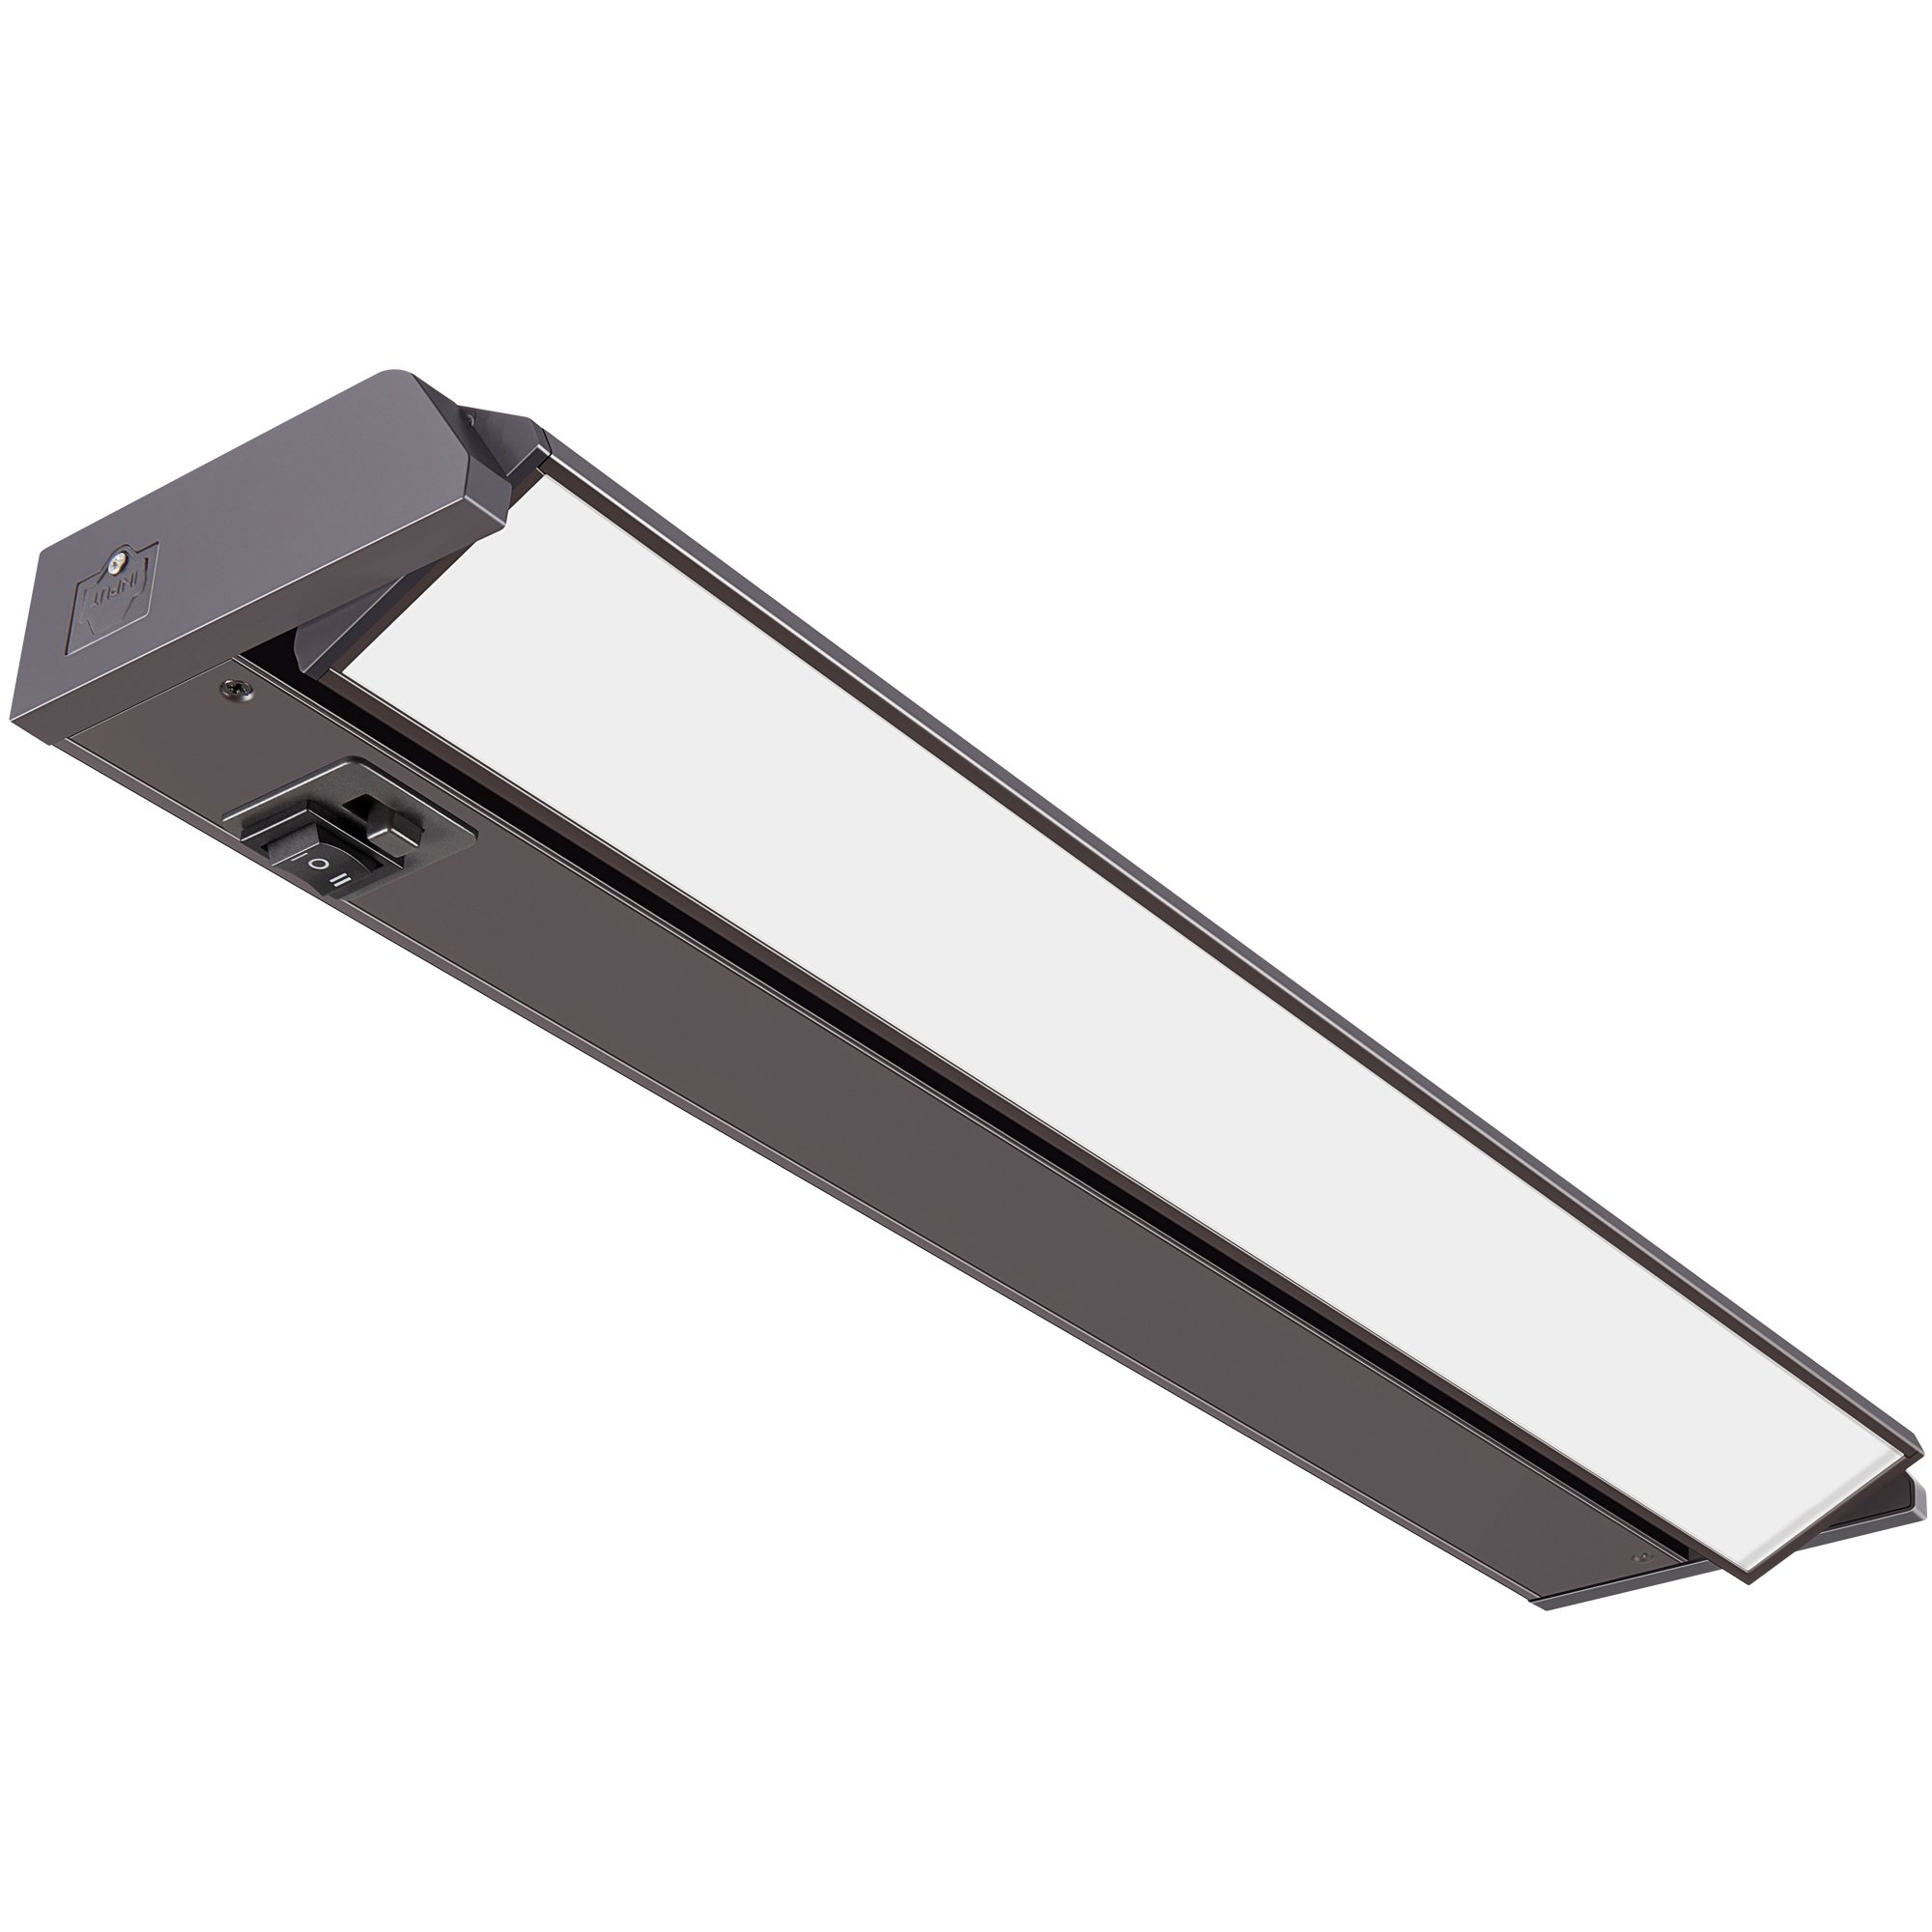 GetInLight 3 Color Levels Swivel LED Under Cabinet Light, Dimmable, Hardwired/Plug-in, Warm White(2700K), Soft White(3000K), Bright White(4000K), Bronze Finished, 18-inch, IN-0202-2-BZ by GetInLight